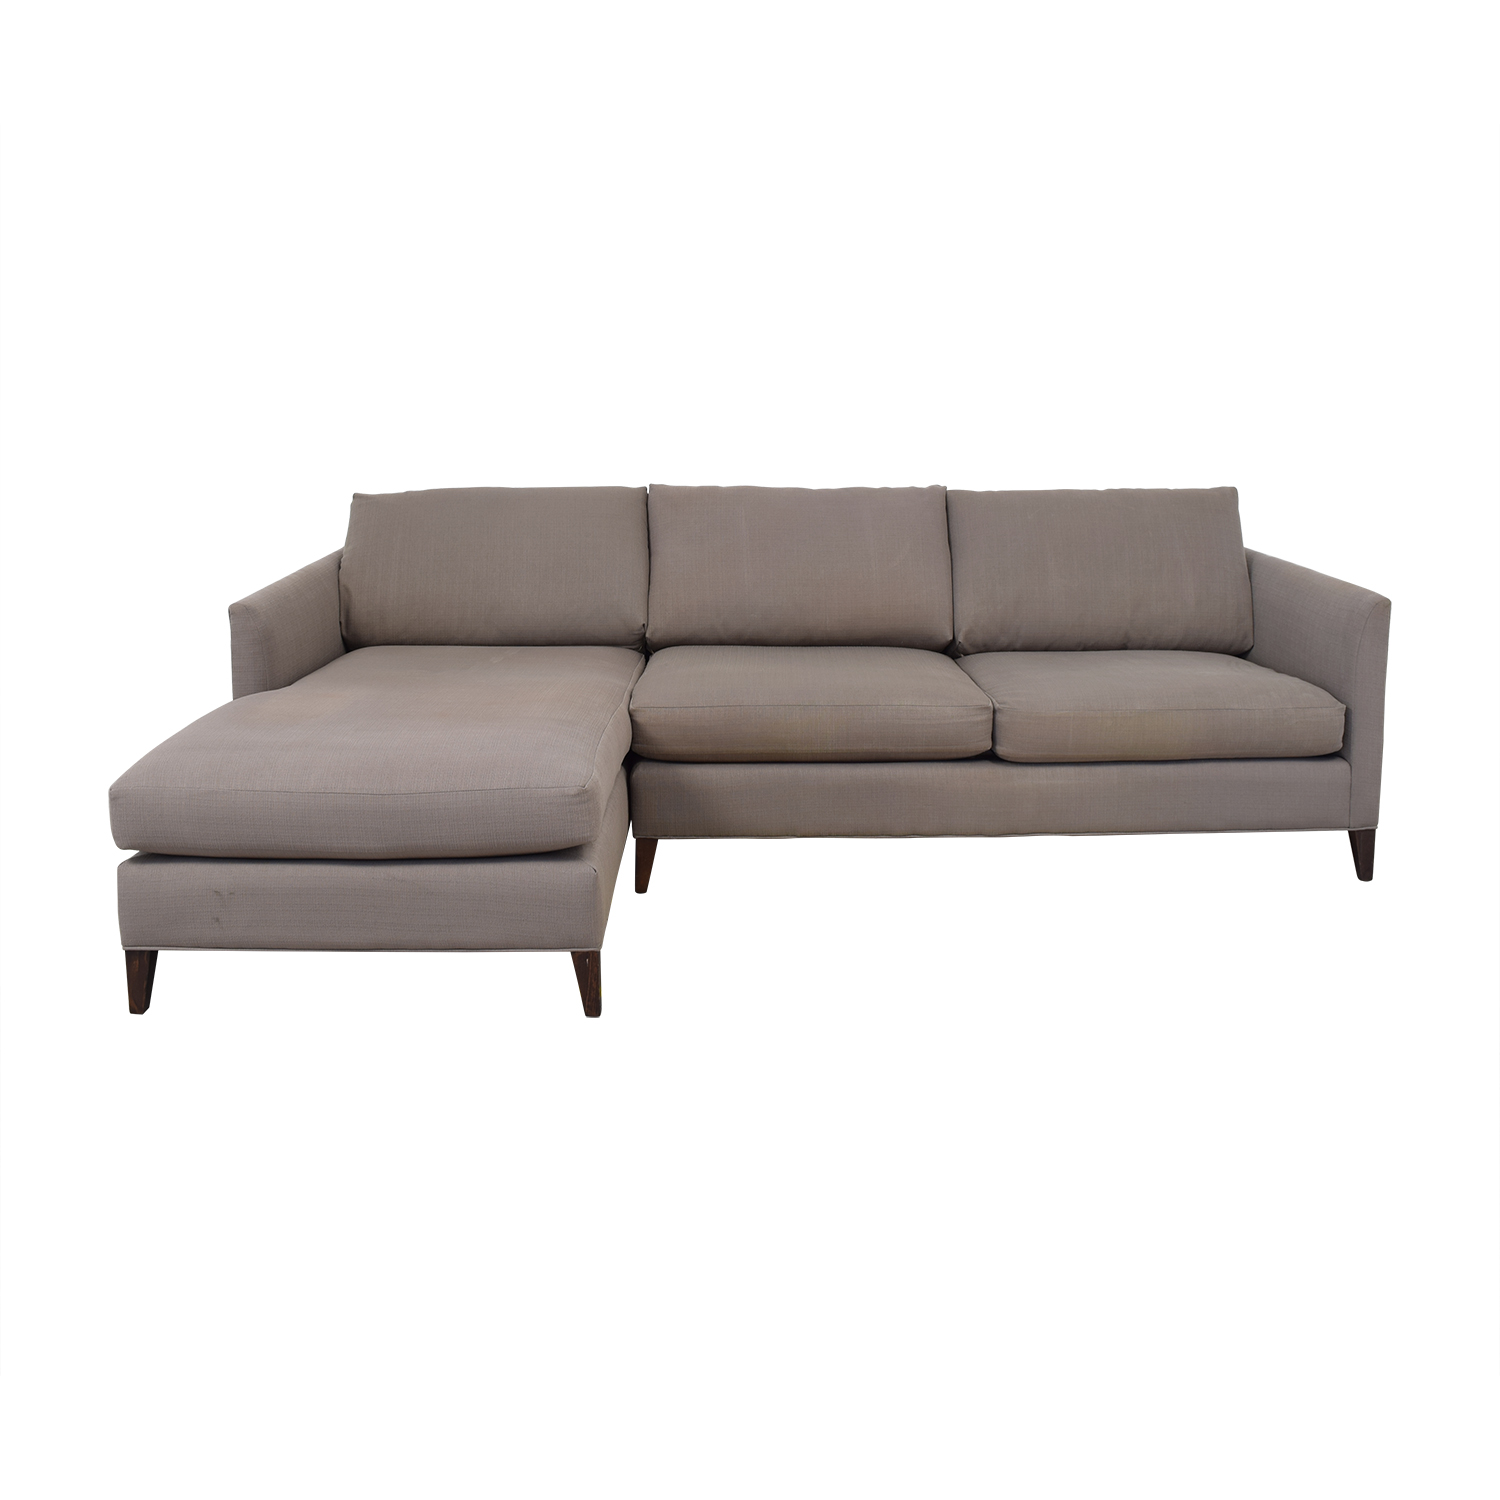 Crate & Barrel Crate & Barrel Two Piece Sectional price